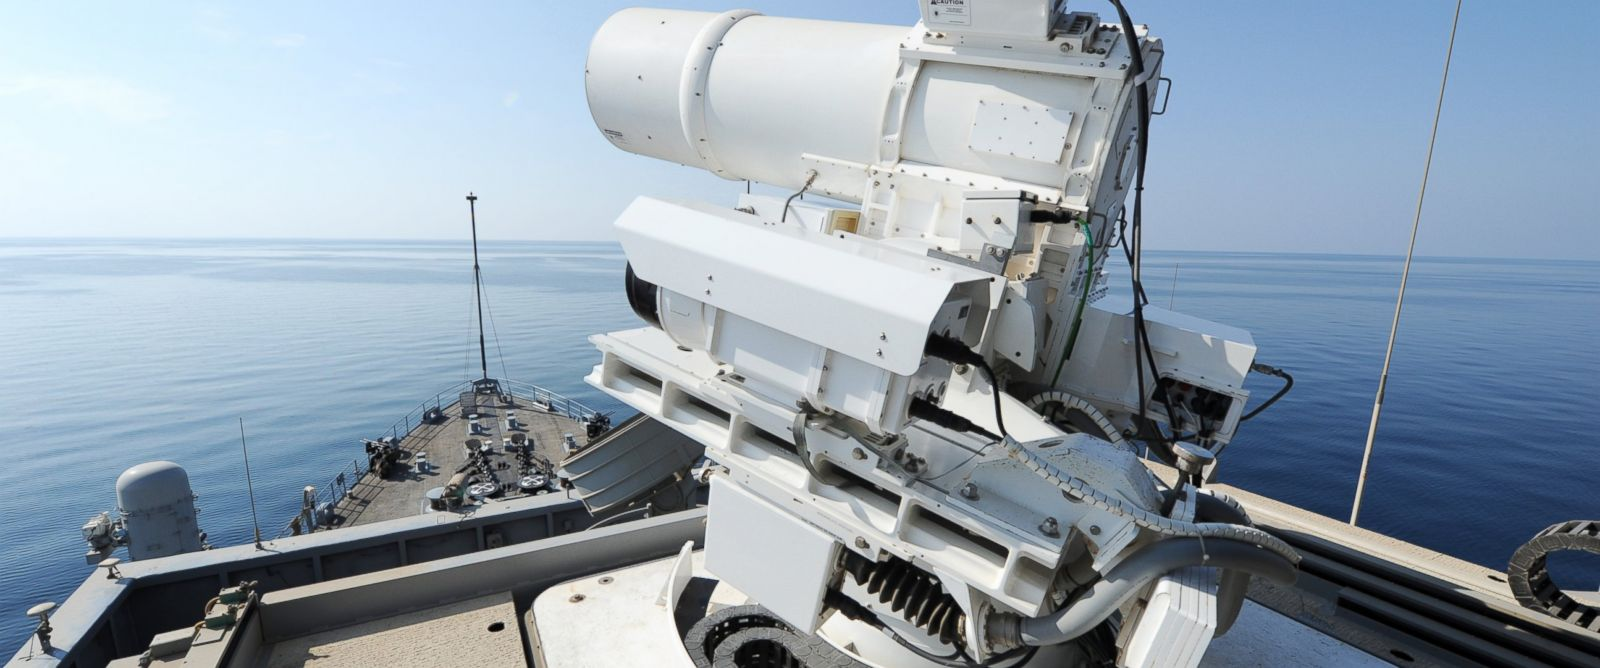 PHOTO: The Afloat Forward Staging Base (Interim) USS Ponce (ASB(I) 15) conducts an operational demonstration of the Office of Naval Research (ONR)-sponsored Laser Weapon System (LaWS) while deployed to the Arabian Gulf.